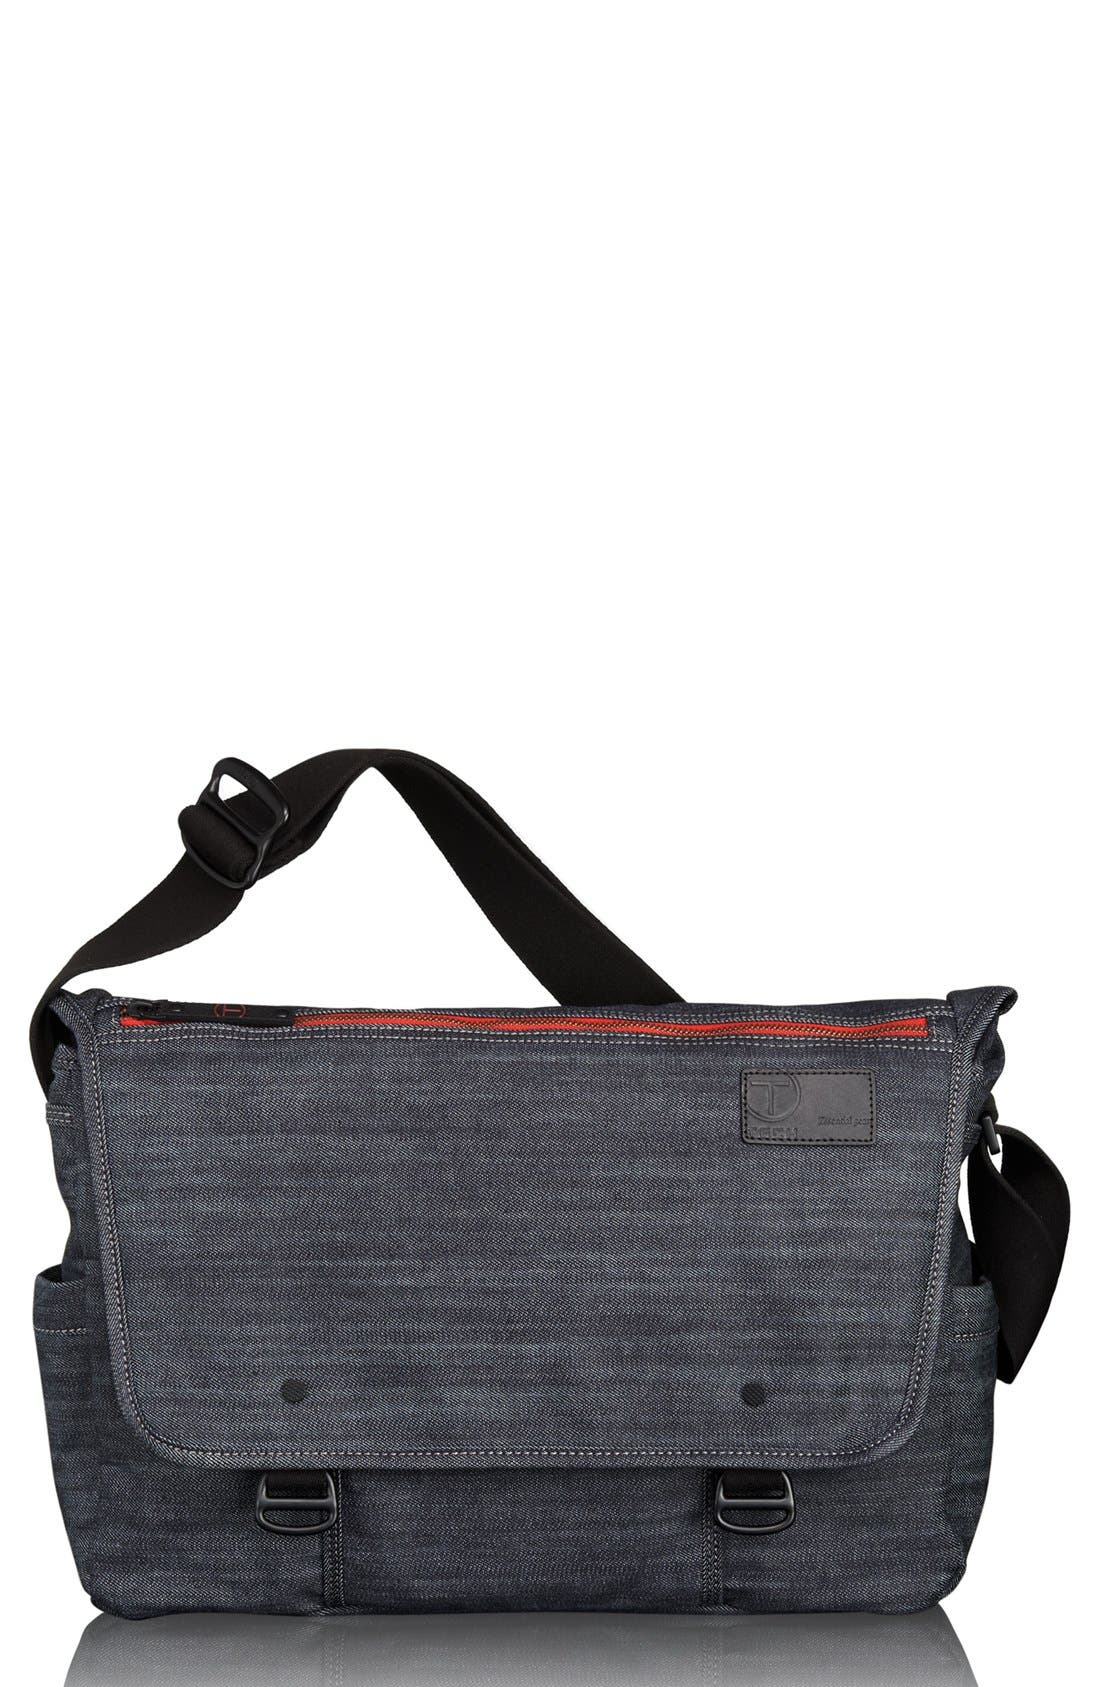 Alternate Image 1 Selected - T-Tech by Tumi 'Icon - Usher' Messenger Bag